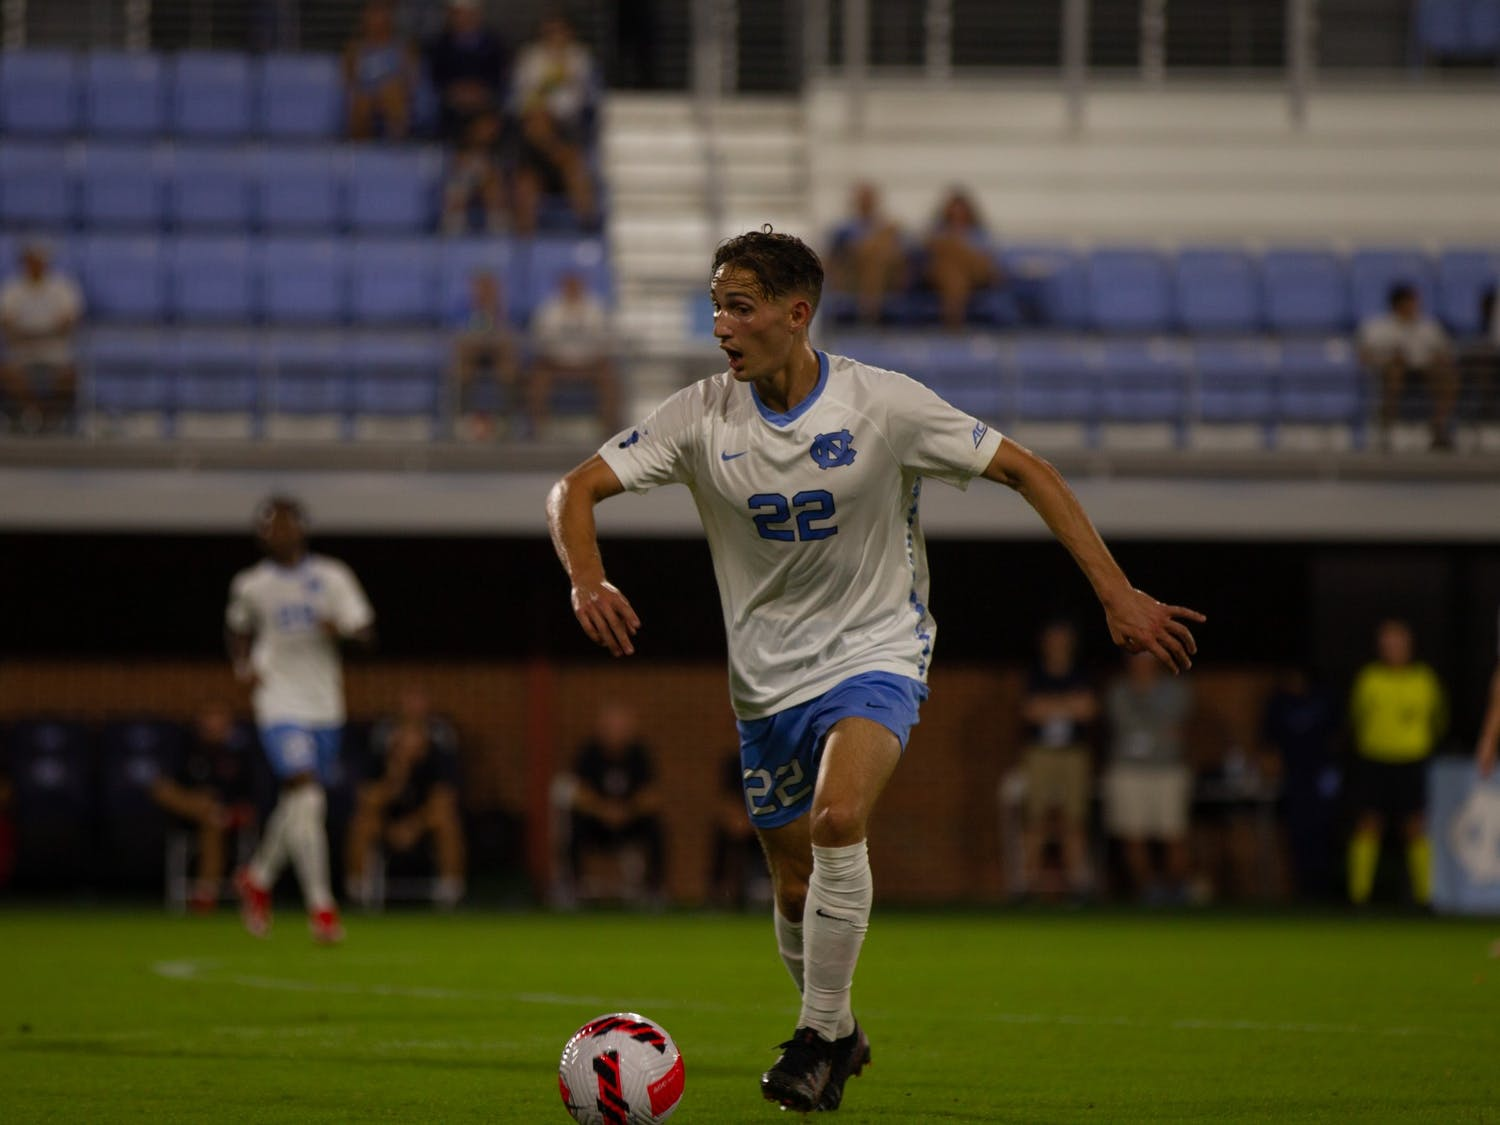 Milo Garvanian (22) prepares to kick the ball at the game against NC State on Oct. 3 at Dorrance Field. UNC won 4-0.